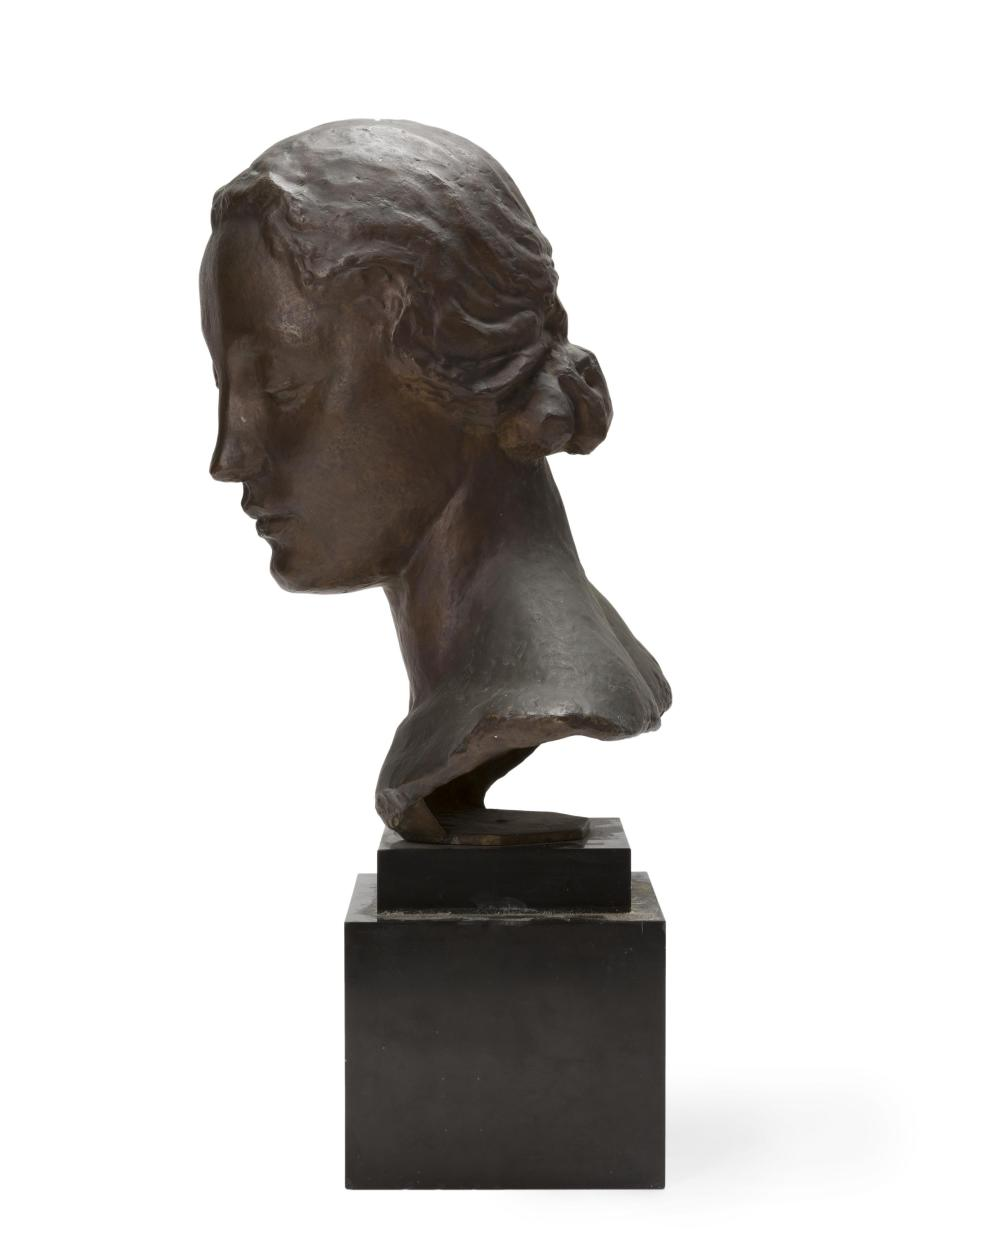 Robert Wlerick, (1882-1944 French), Bust of a woman, Patinated cast bronze on marble plinth, 15.5